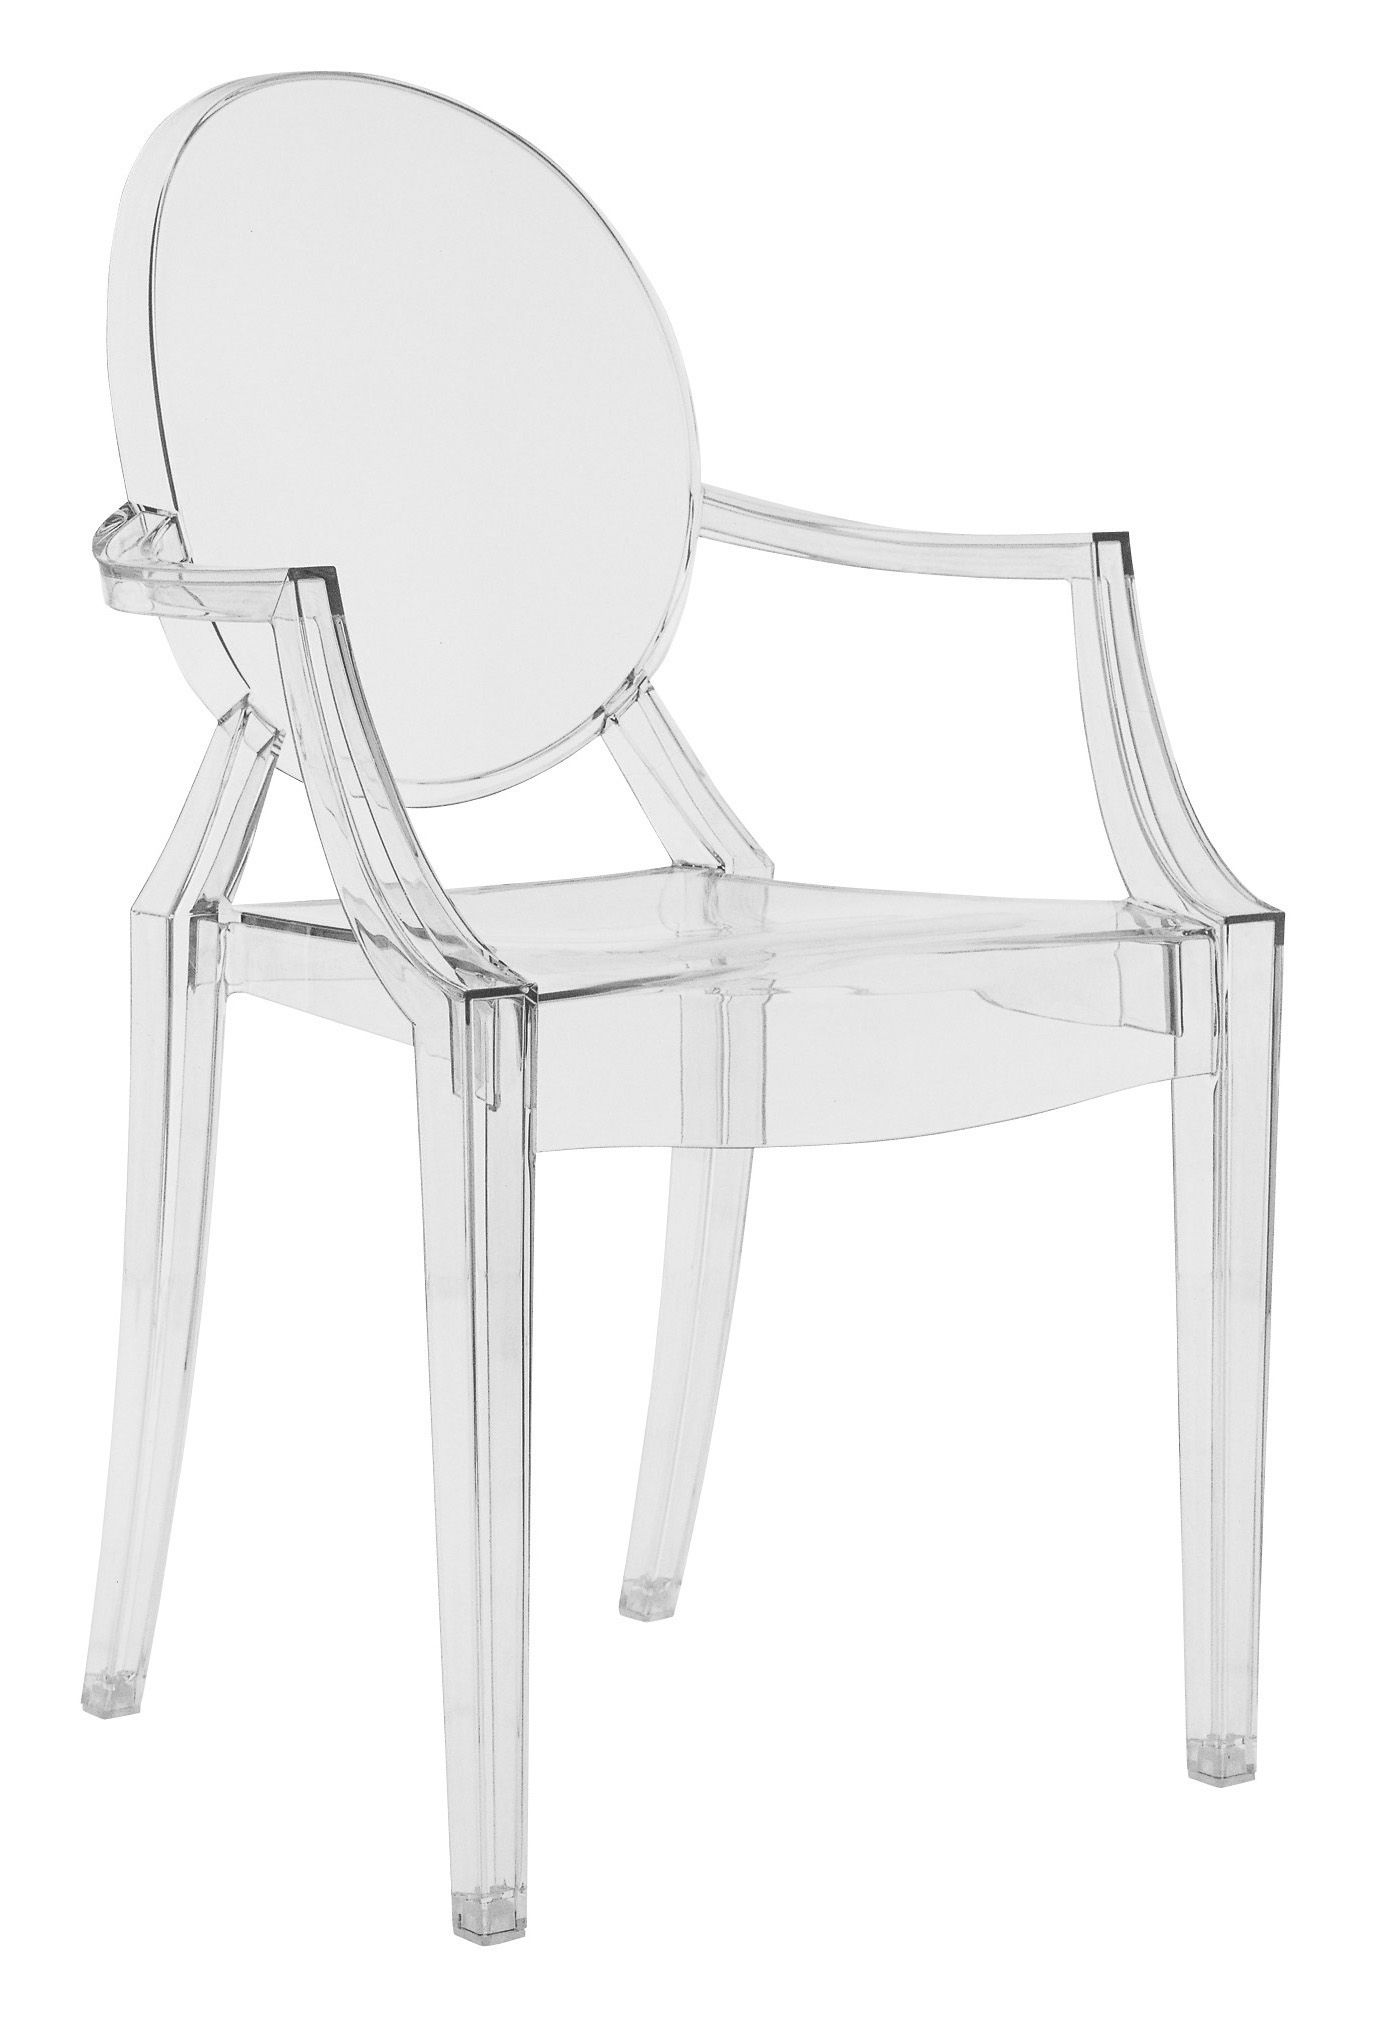 Furniture - Chairs - Louis Ghost Stackable armchair - transparent / Polycarbonate by Kartell - Transparent crystal - Polycarbonate